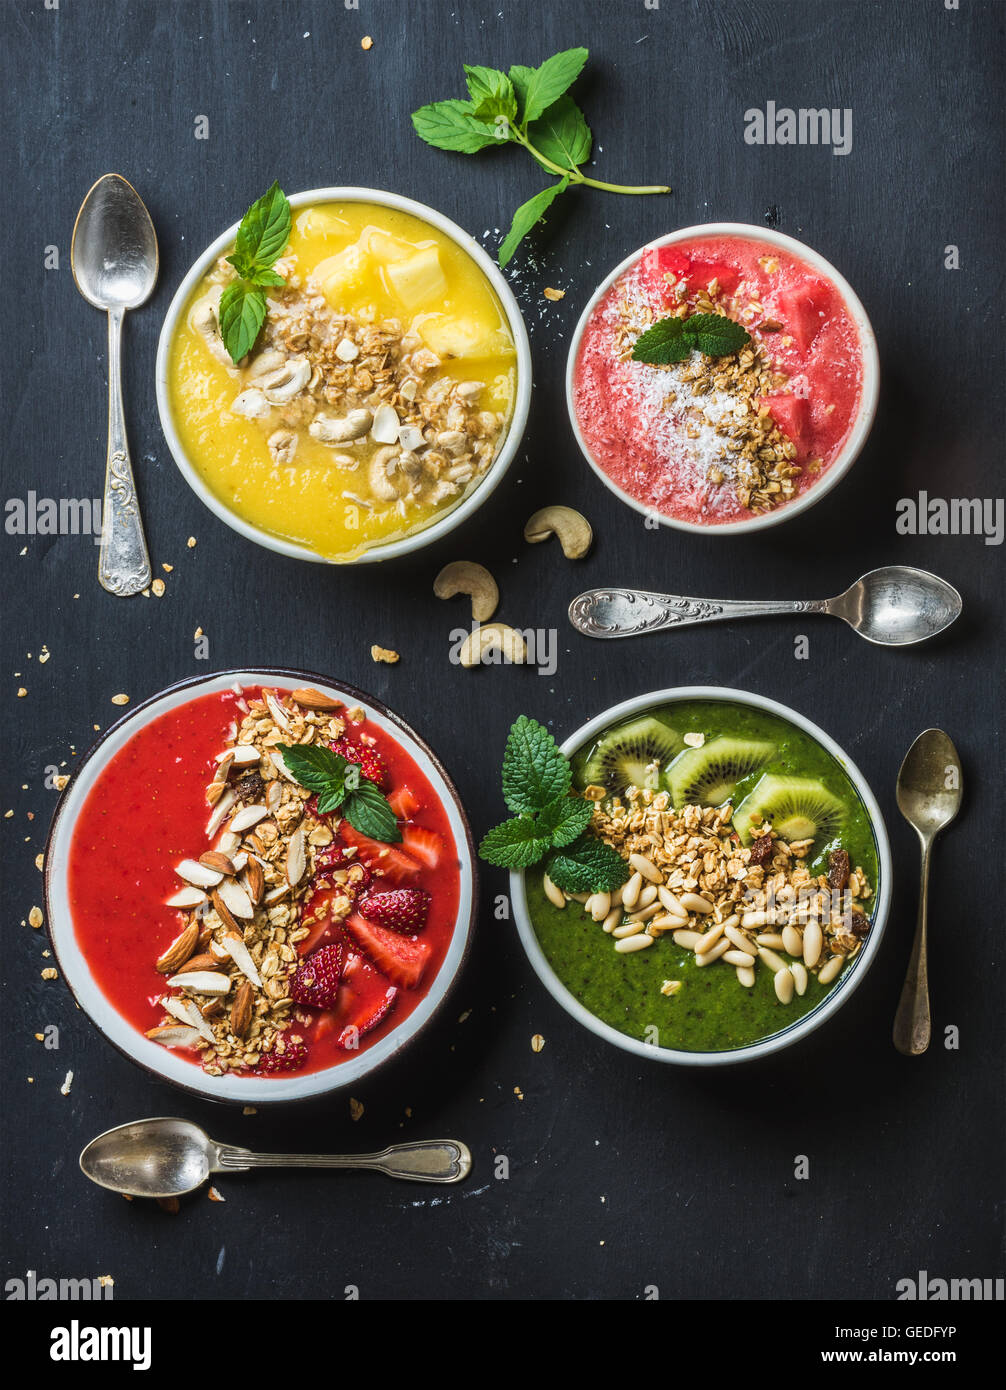 Healthy summer breakfast concept. Colorful fruit smoothie bowls with nuts, oat granola and mint leaves on black - Stock Image